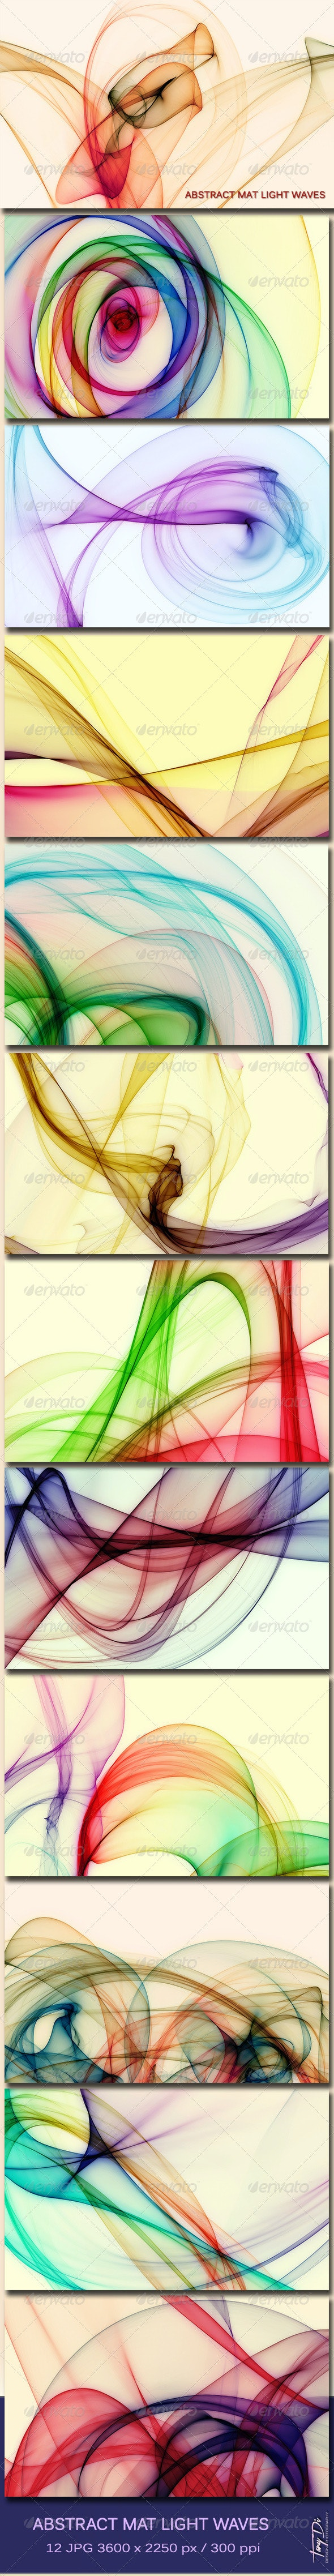 Abstract Mat Light Waves - Abstract Backgrounds